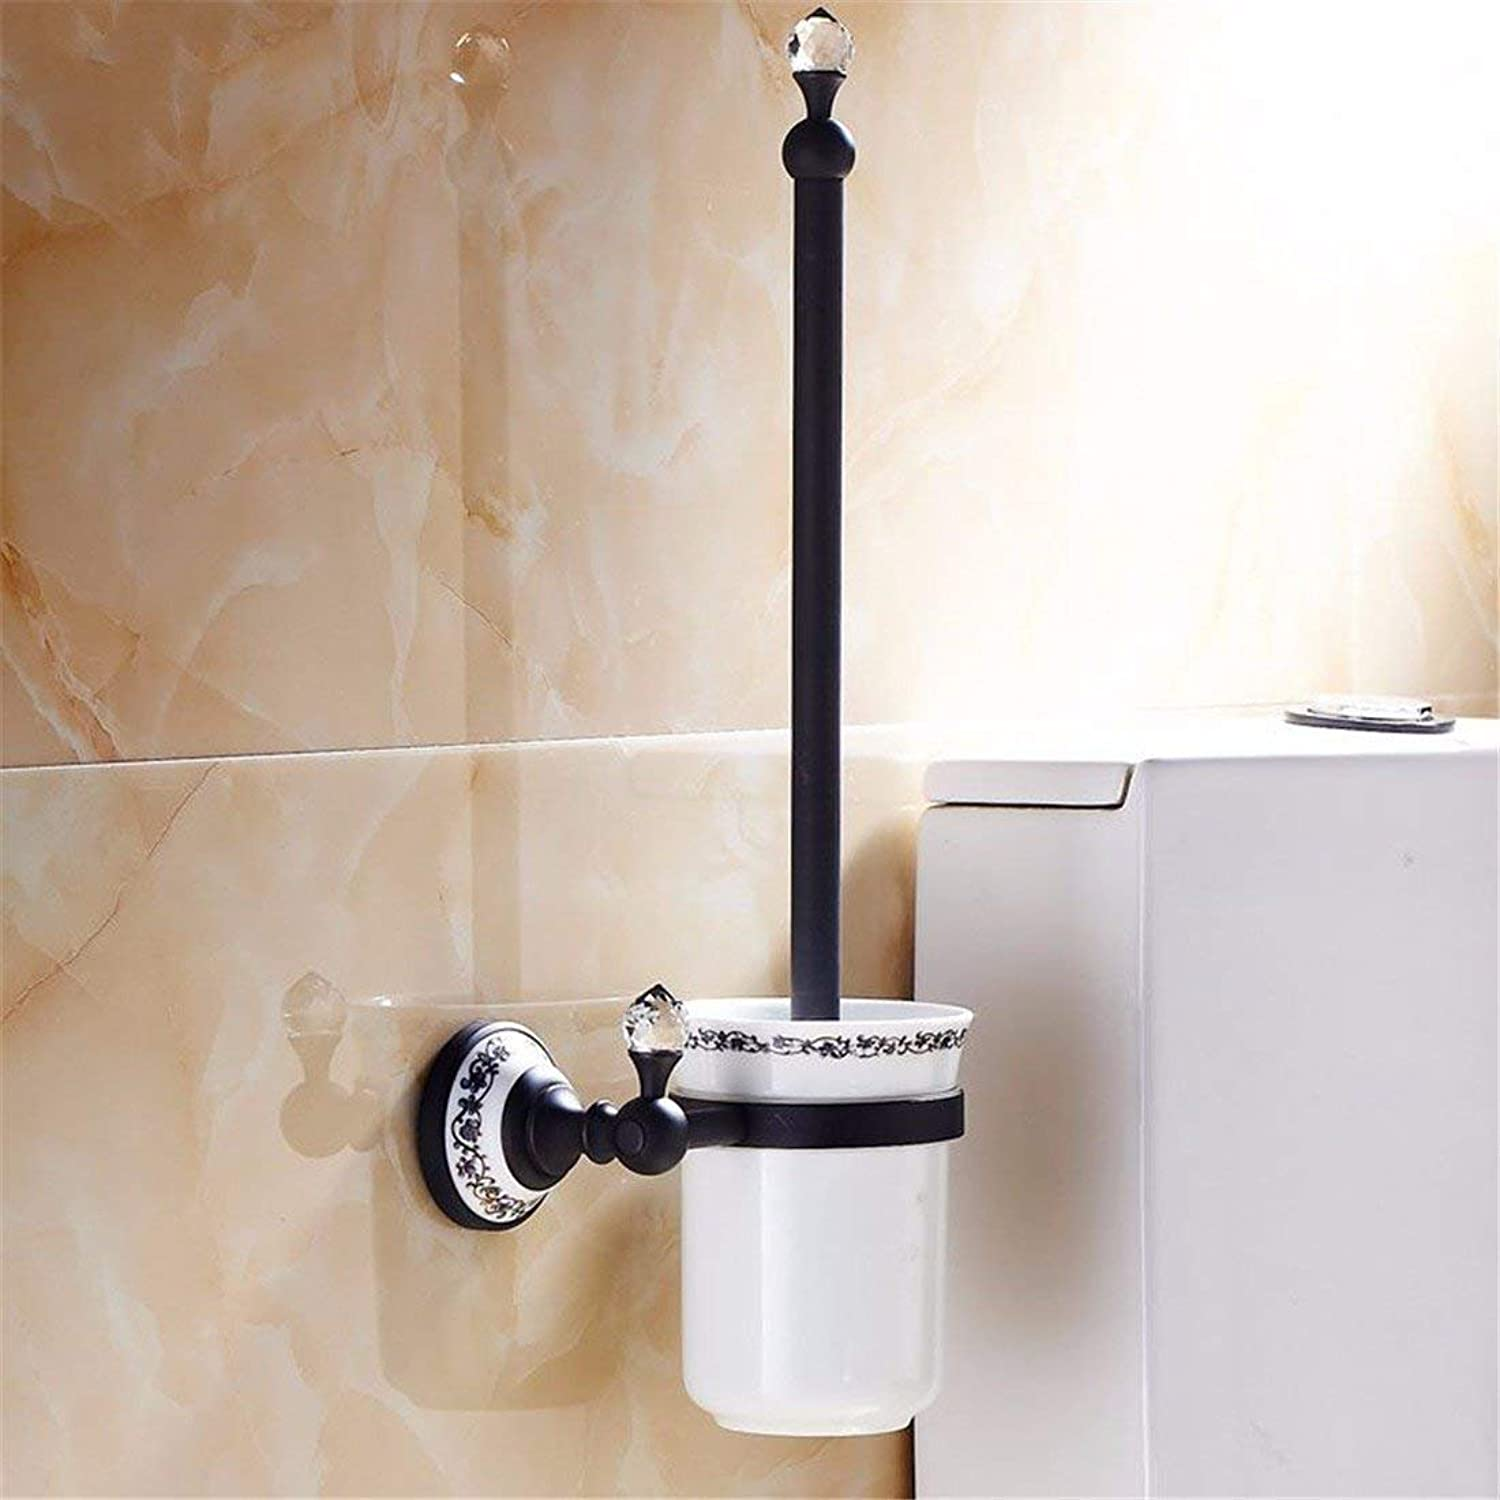 European Style of Christmas All The Former in Copper Black Copper Ceramic Crystal Bathroom soap Dispenser, Dry-Towels,Toilet Brush